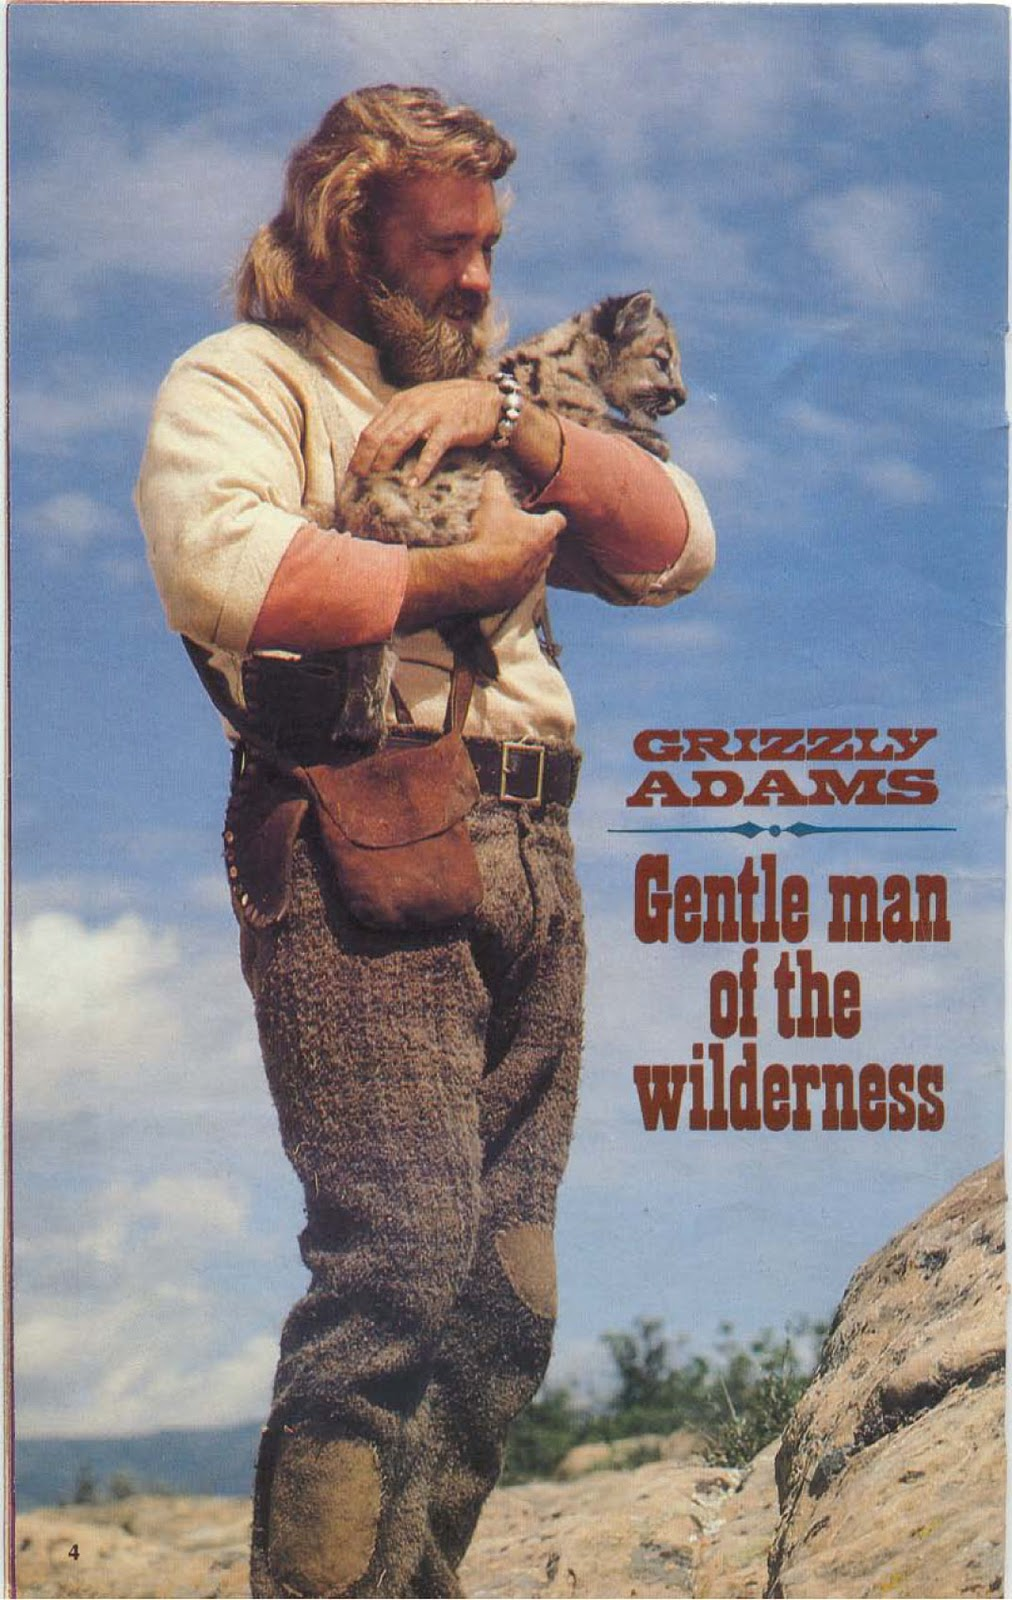 Grizzly Adams Did Have A Beard : grizzly, adams, beard, Strange, Story, Behind, Grizzly, Adams